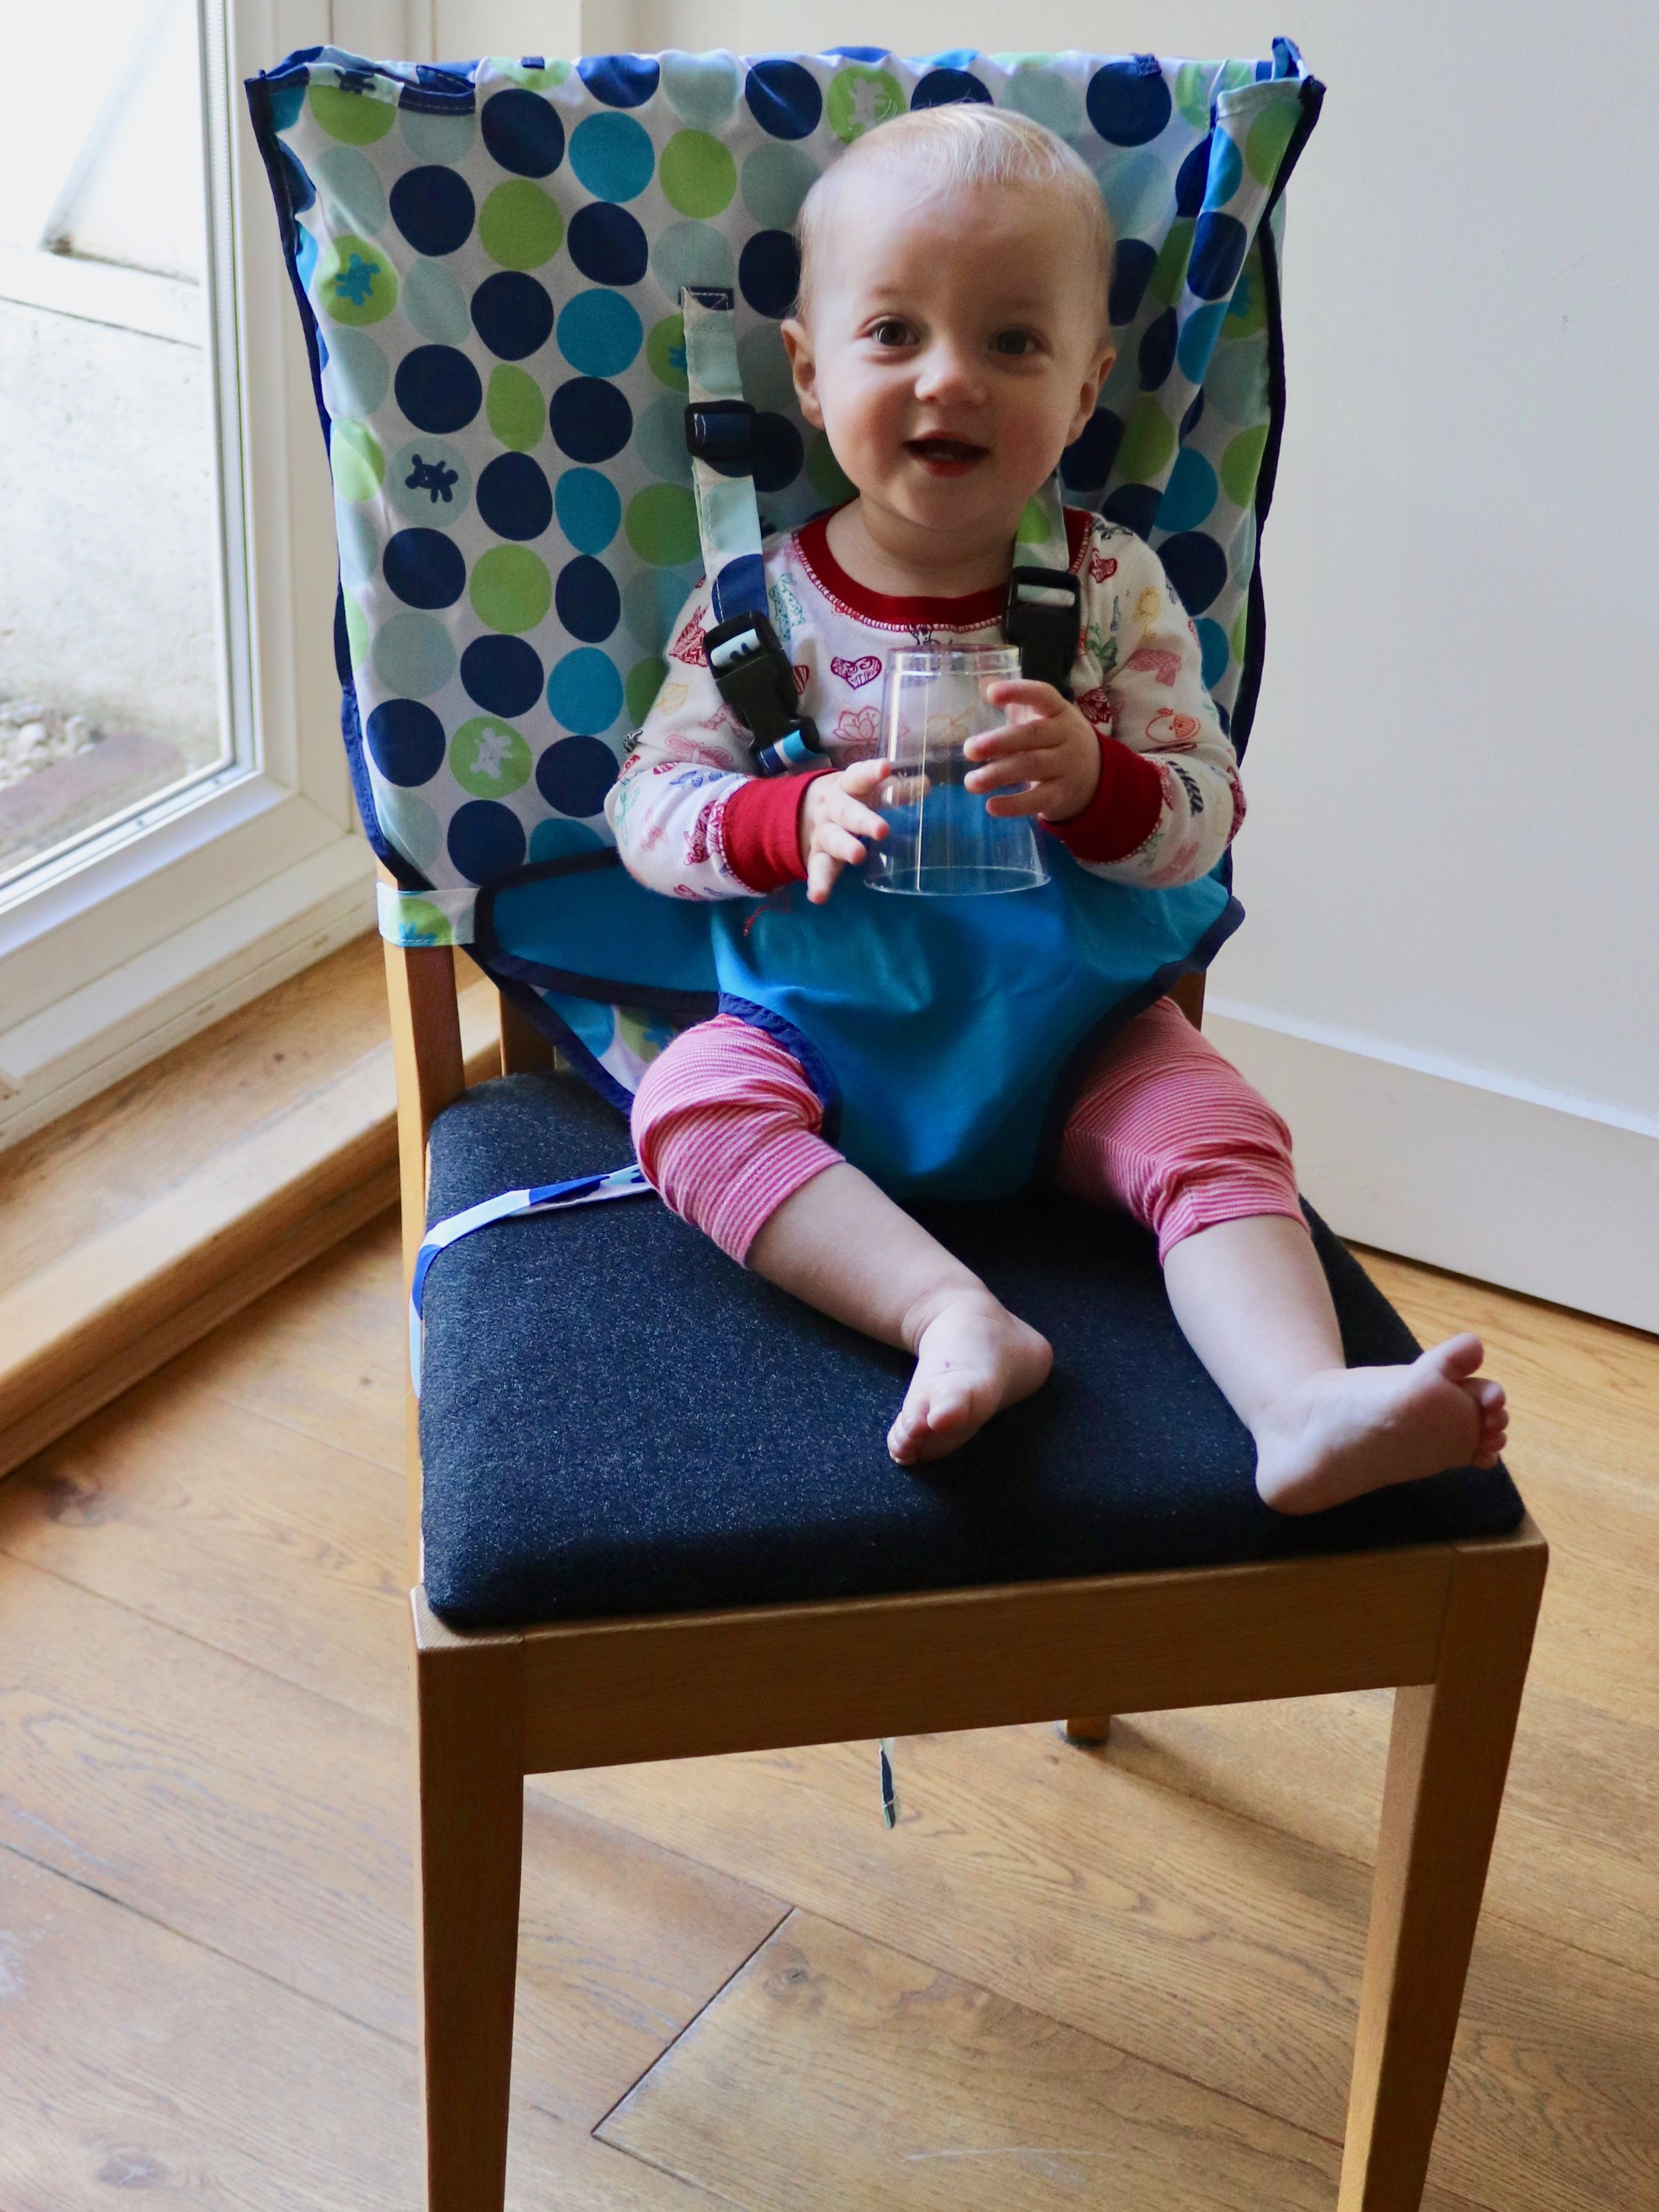 Ready to chow:   The My Little Seat Travel Highchair.